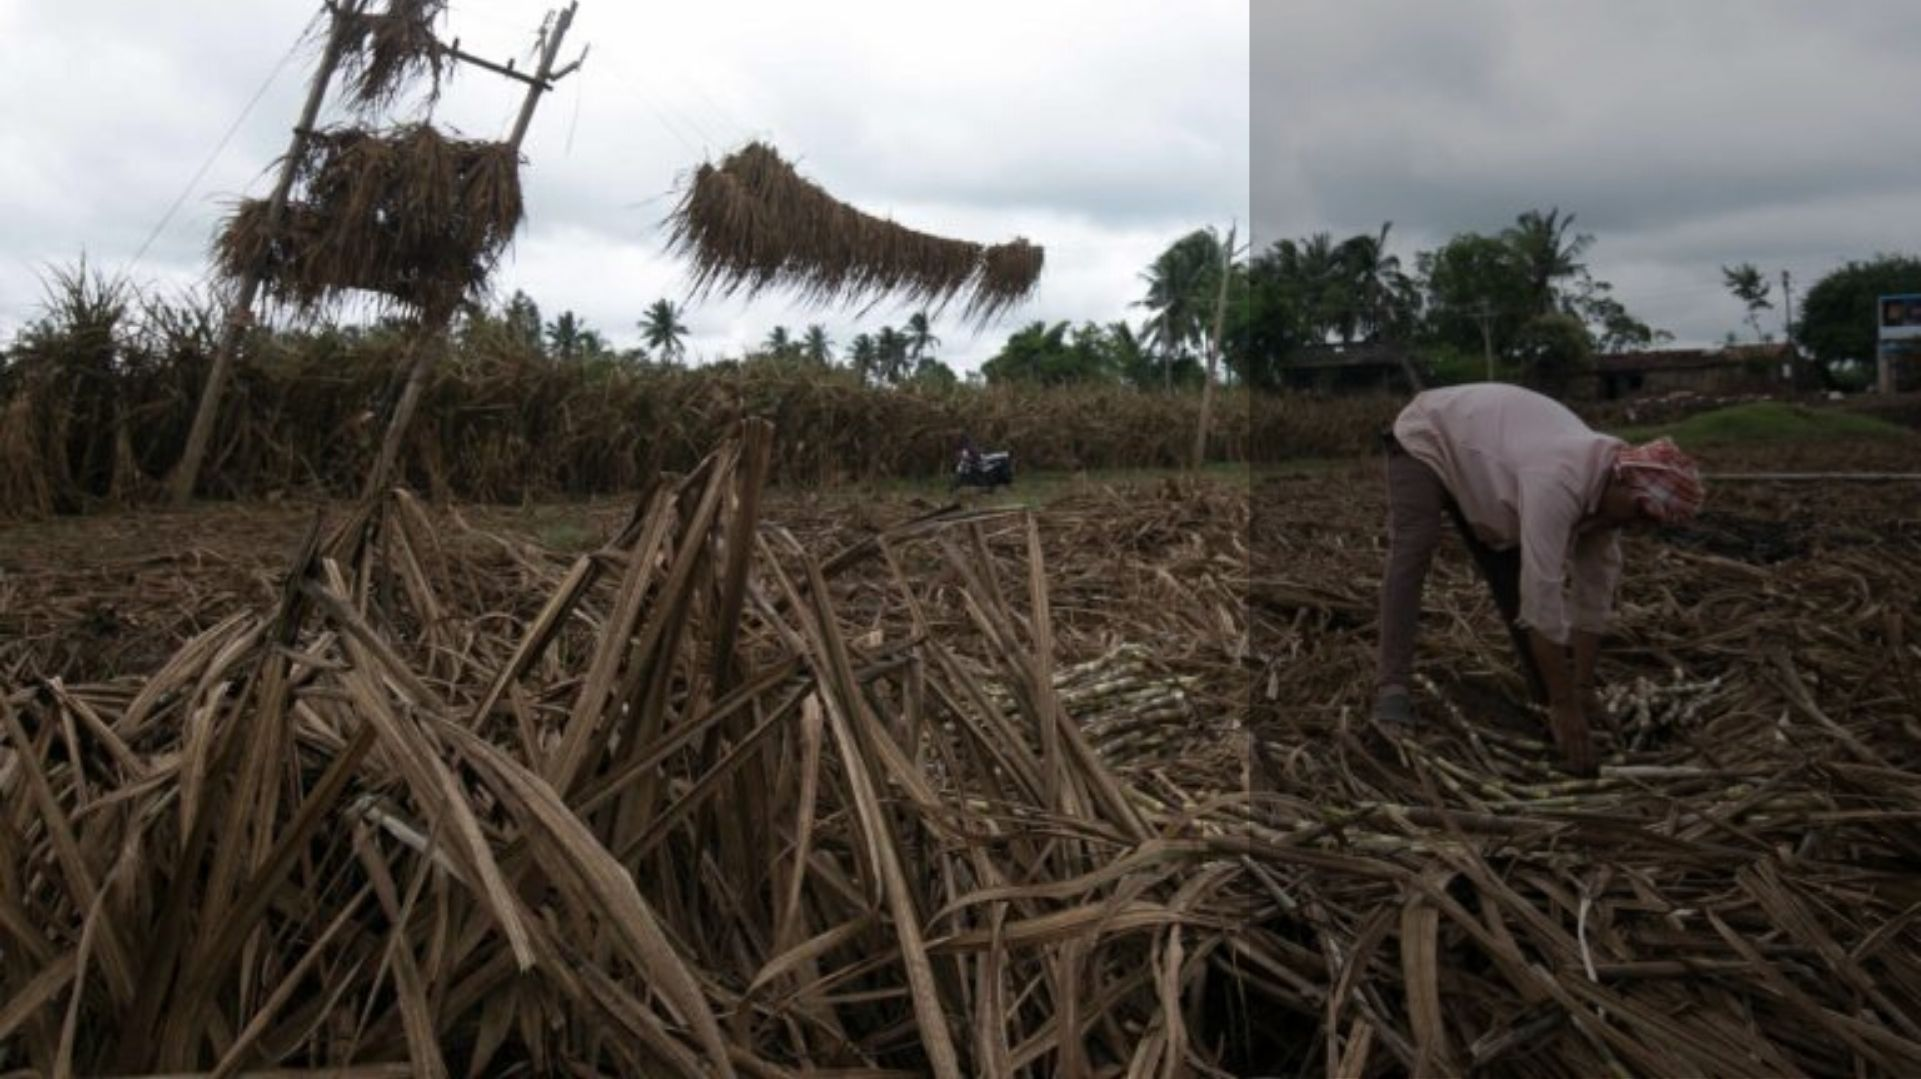 Recent floods force farmers at Maharashtra-Karnataka border to straddle two states, owing to compensation policies